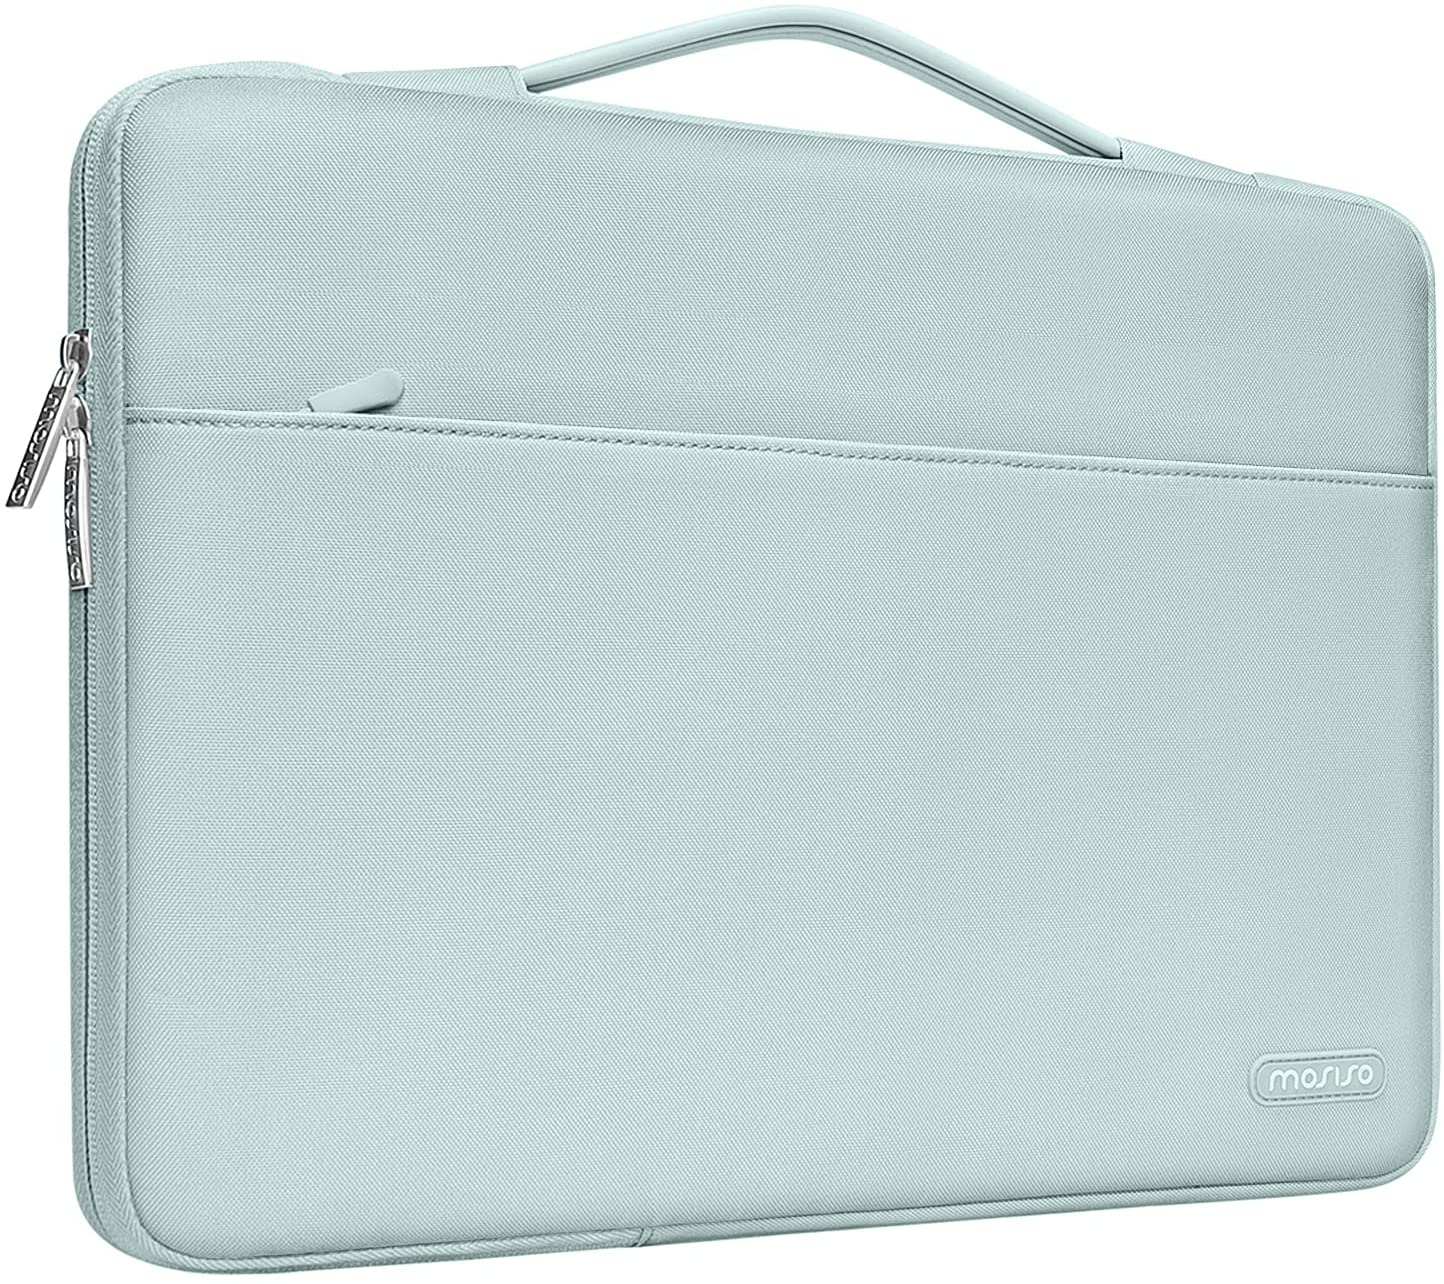 MOSISO 360 Protective Laptop Sleeve Compatible with MacBook Pro 16 inch, 15 15.4 15.6 inch Dell HP Asus Acer Samsung Sony Chromebook, Polyester Bag with Trolley Belt, Mint Green